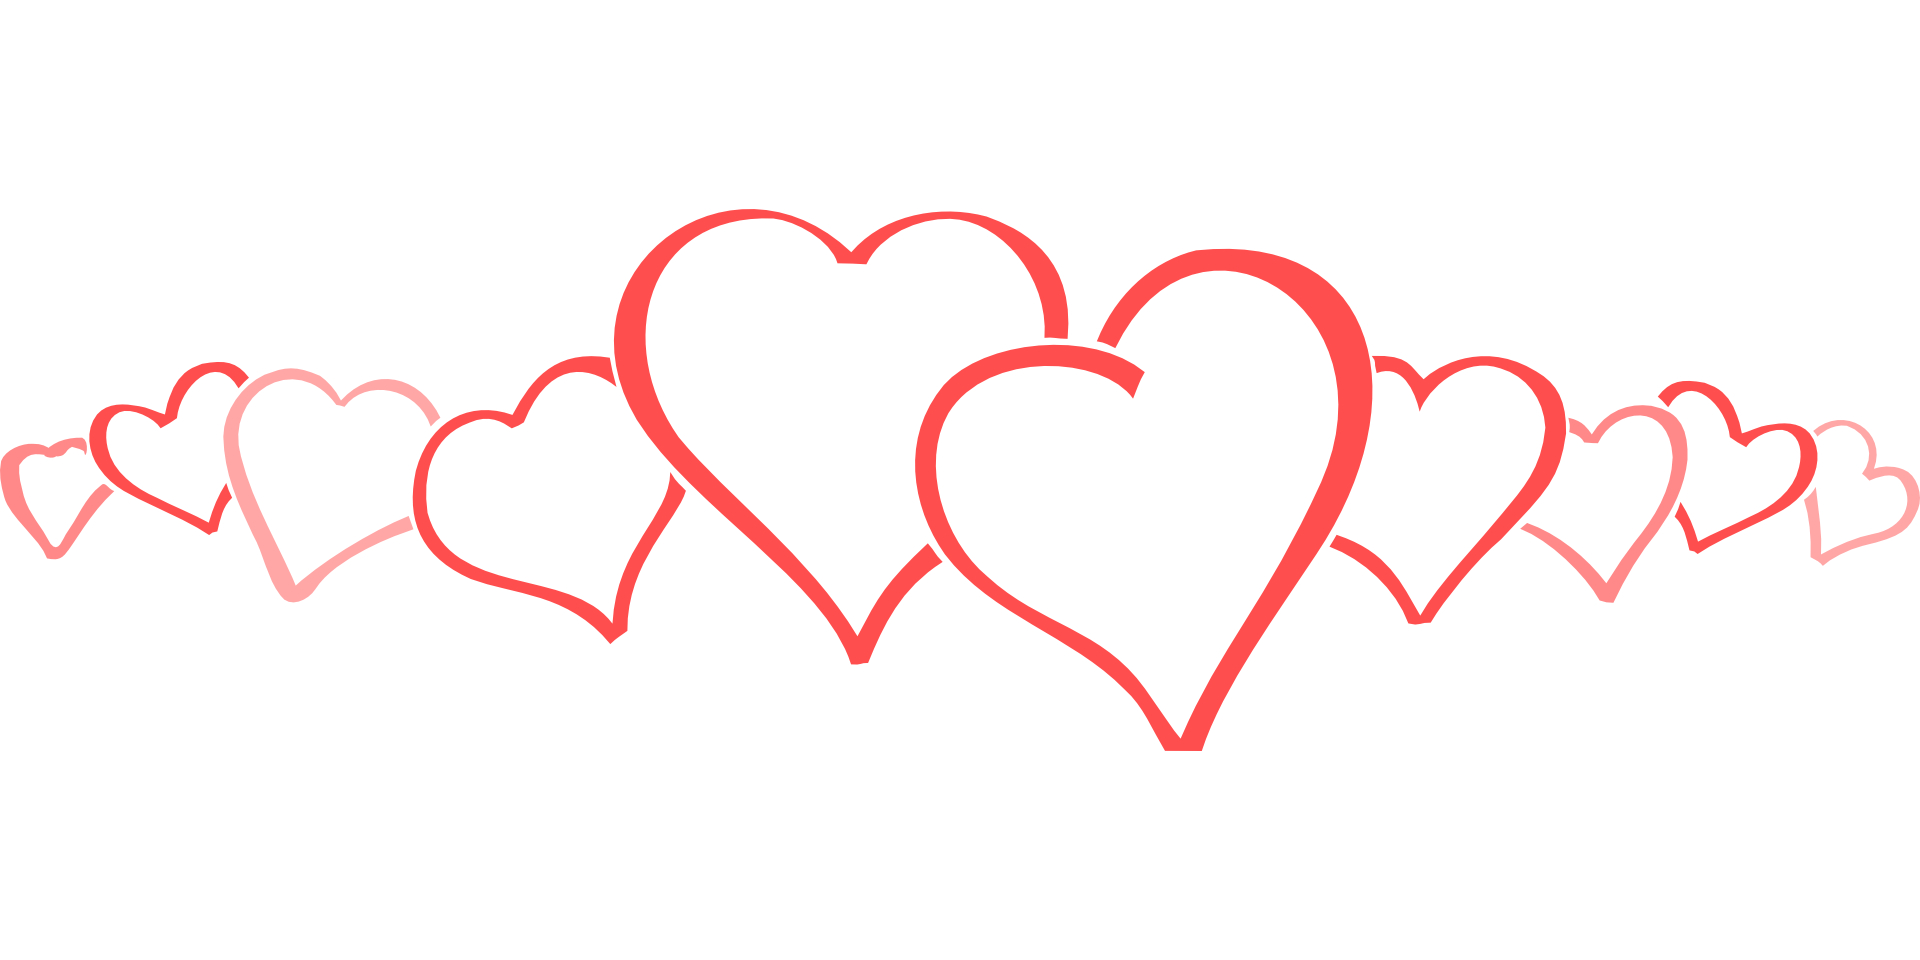 15 Heart Outline PSD Images